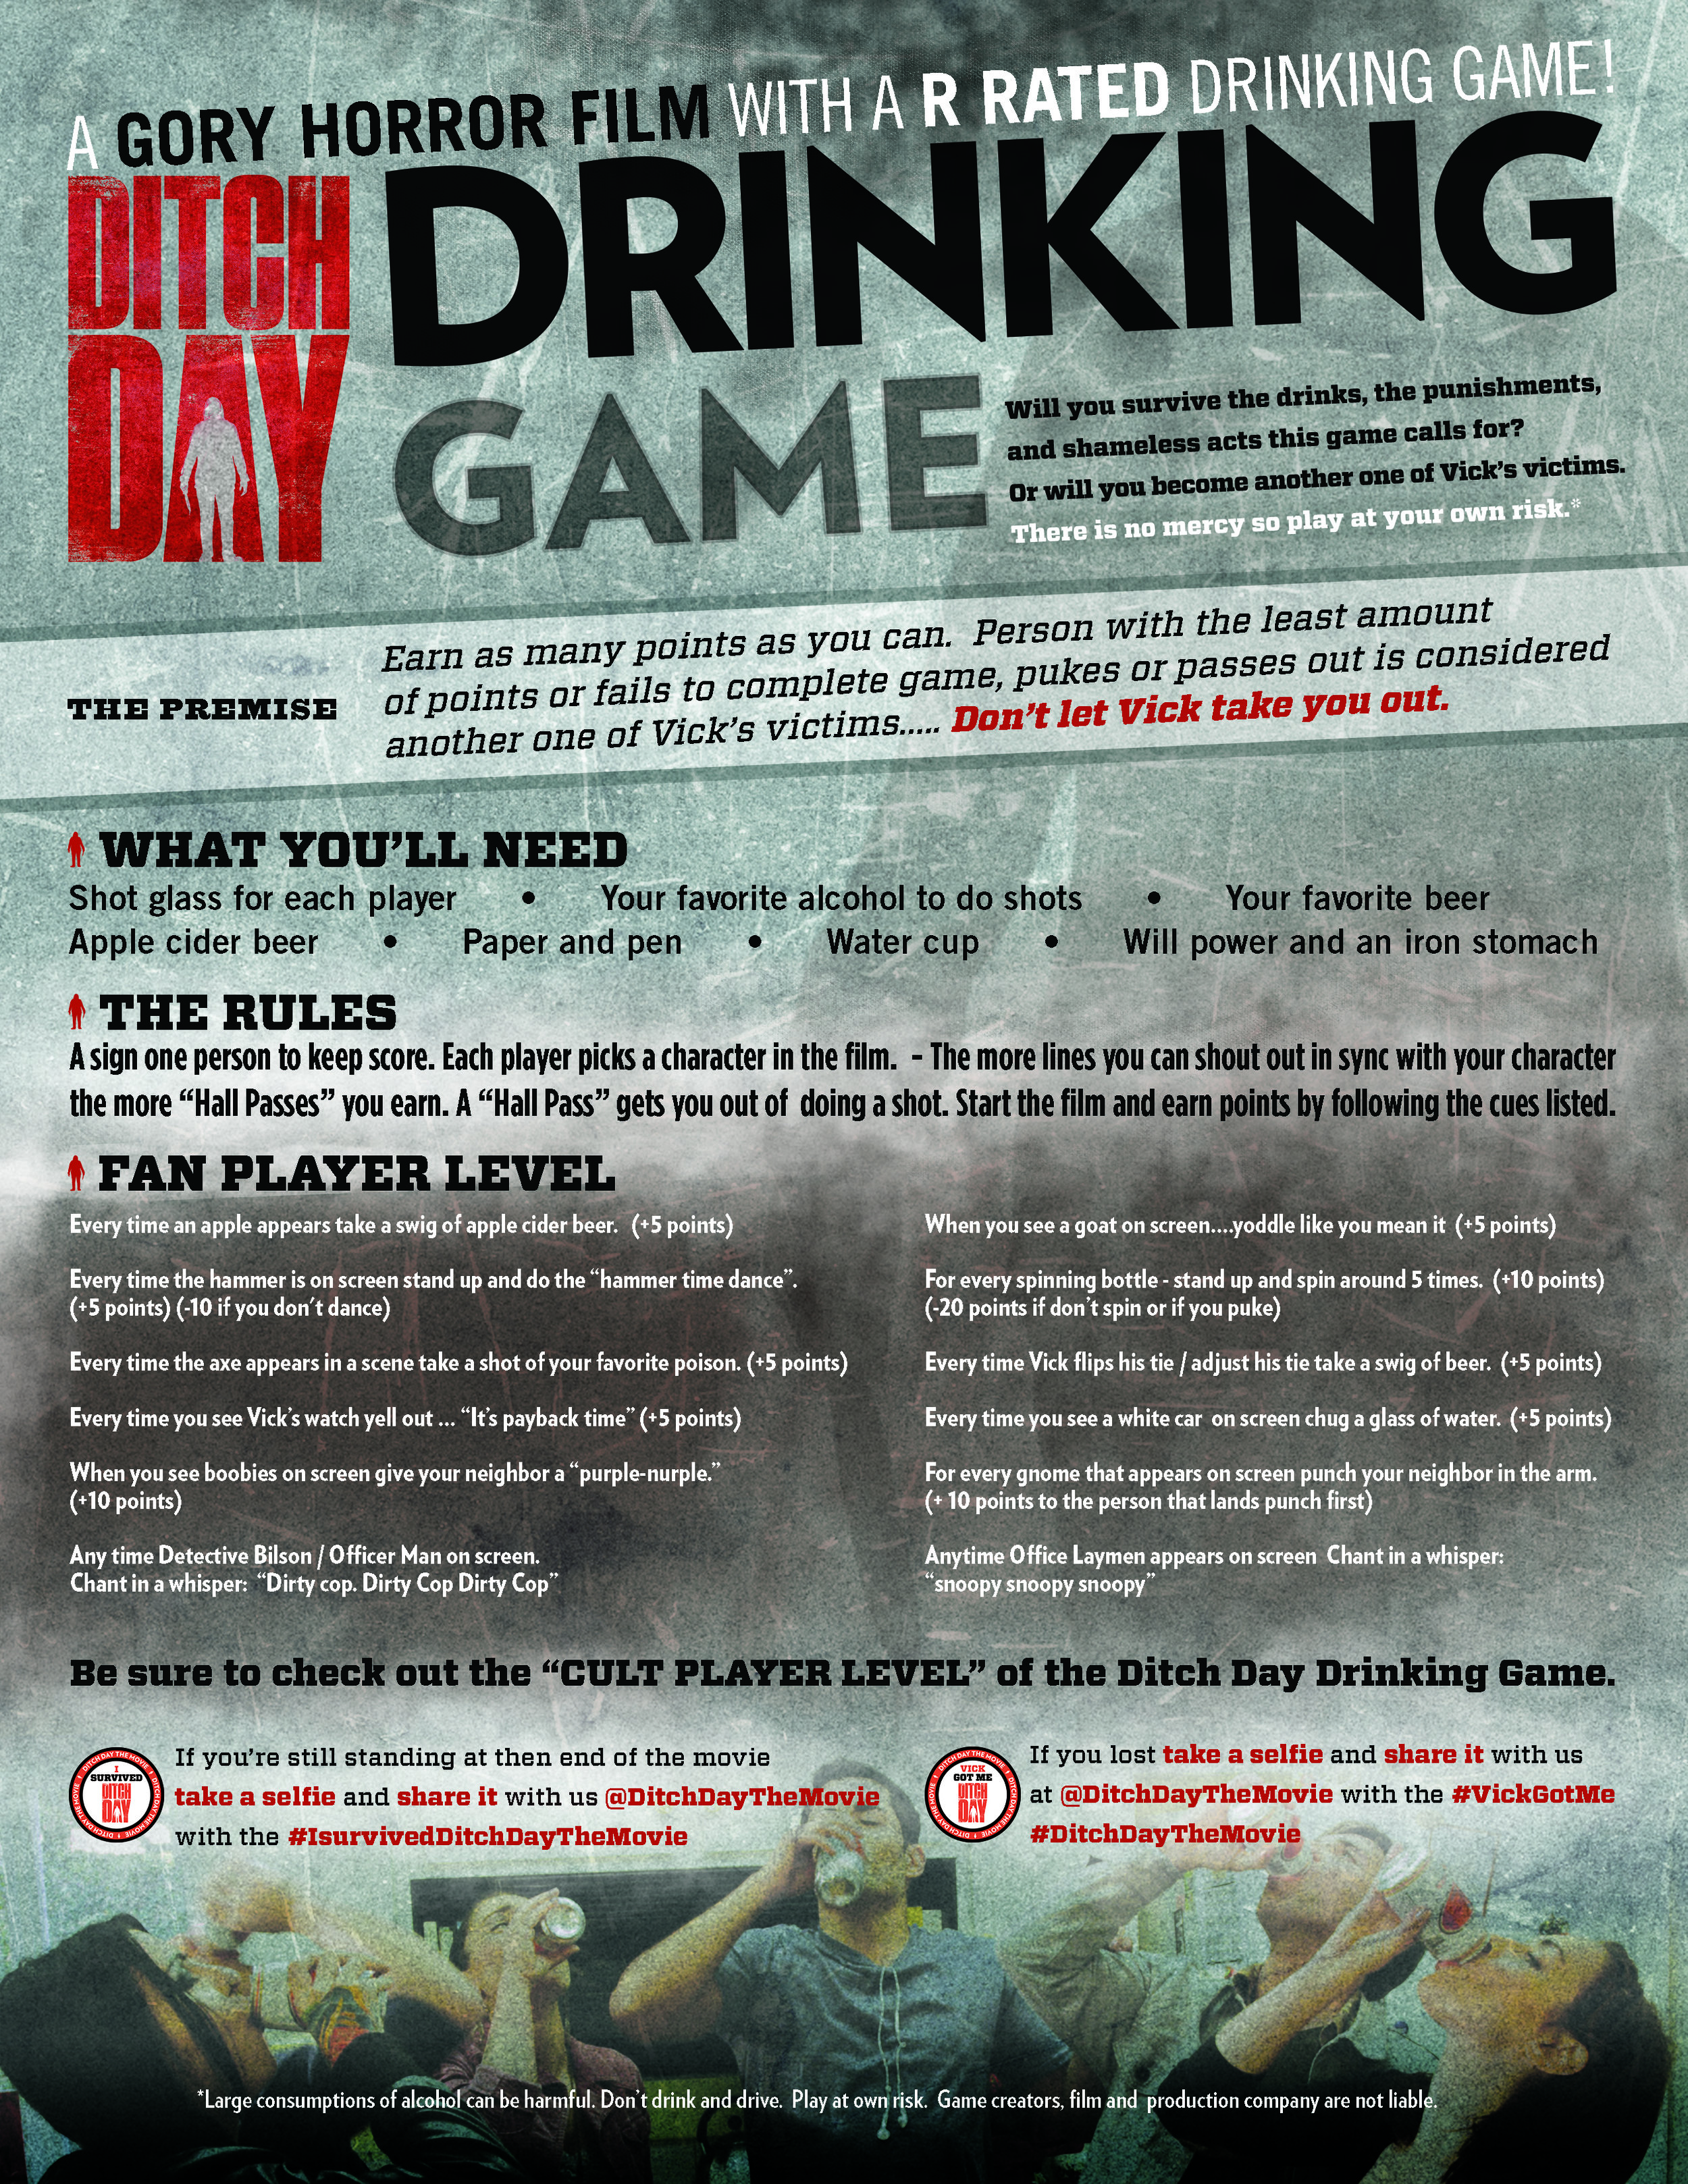 Ditch Day Drinking Game Rules - Fan Player